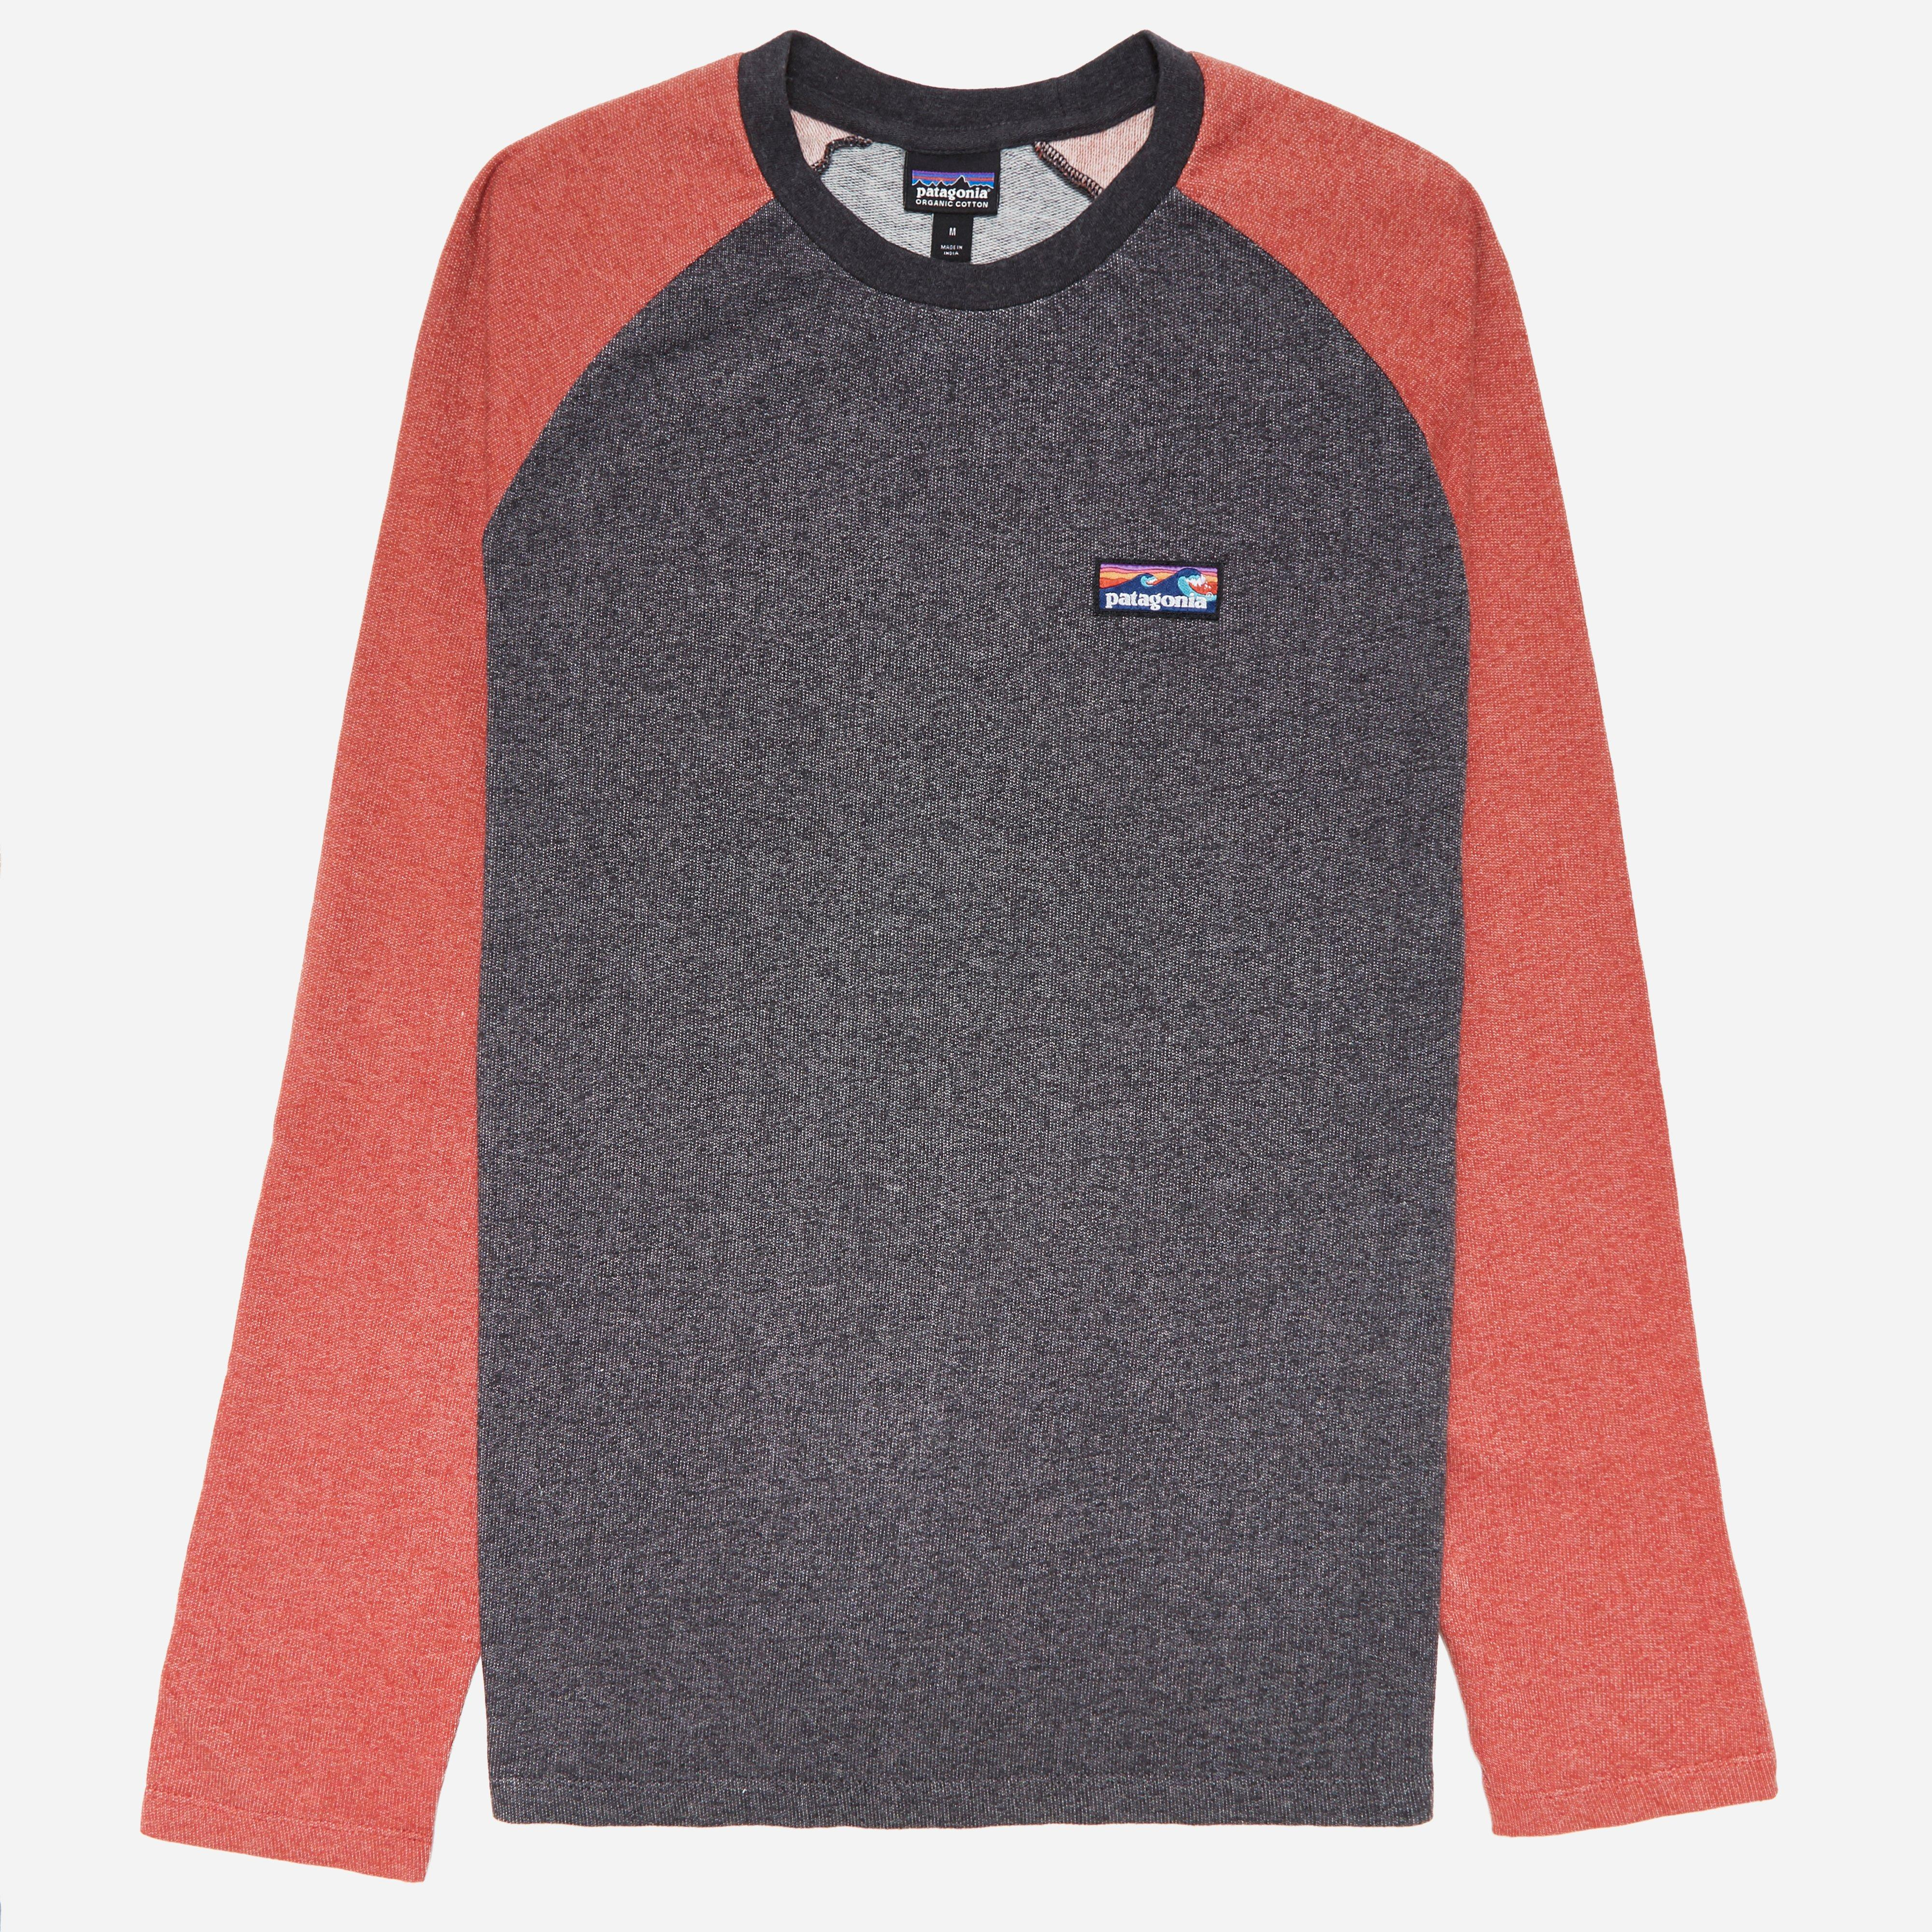 Patagonia Board Short Label LW Crew Sweatshirt